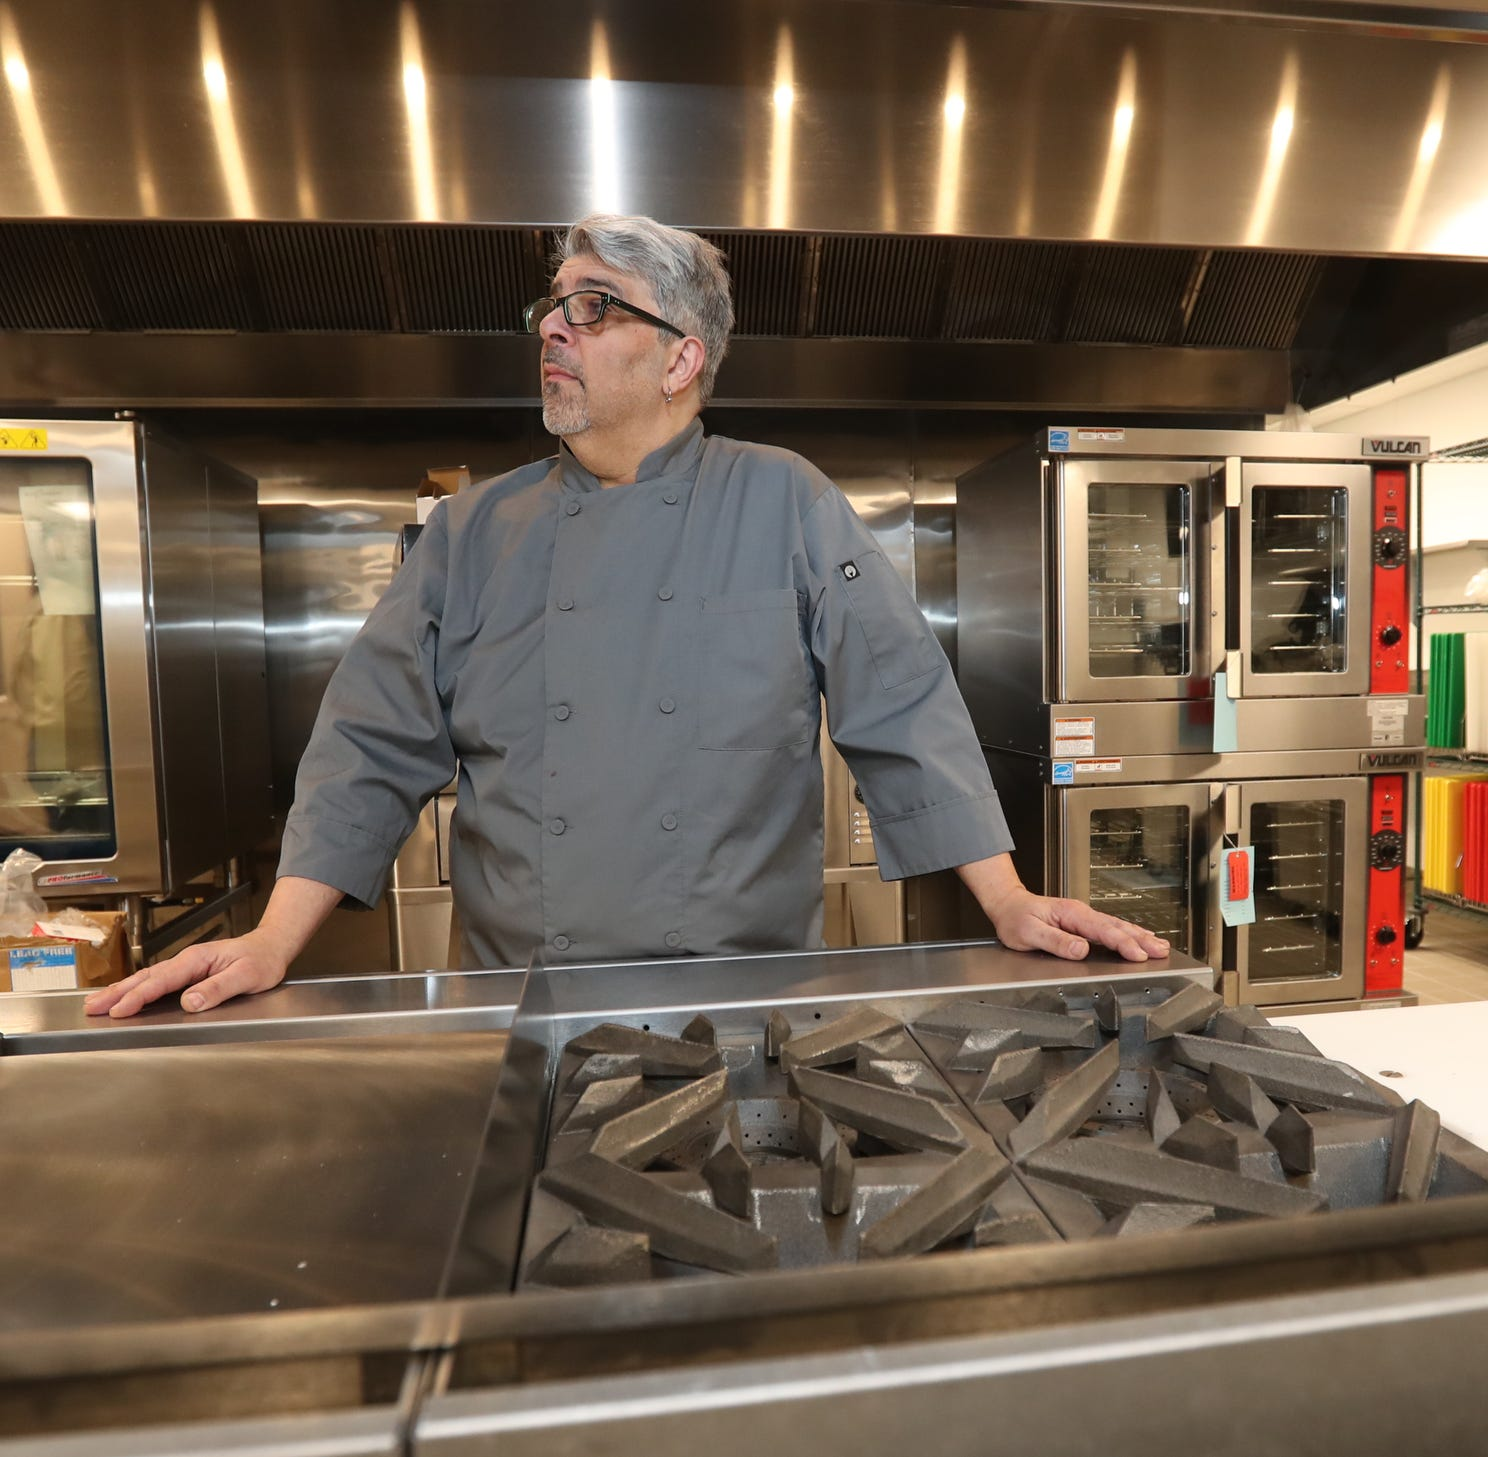 First look: Rockland Community College culinary arts center set to open